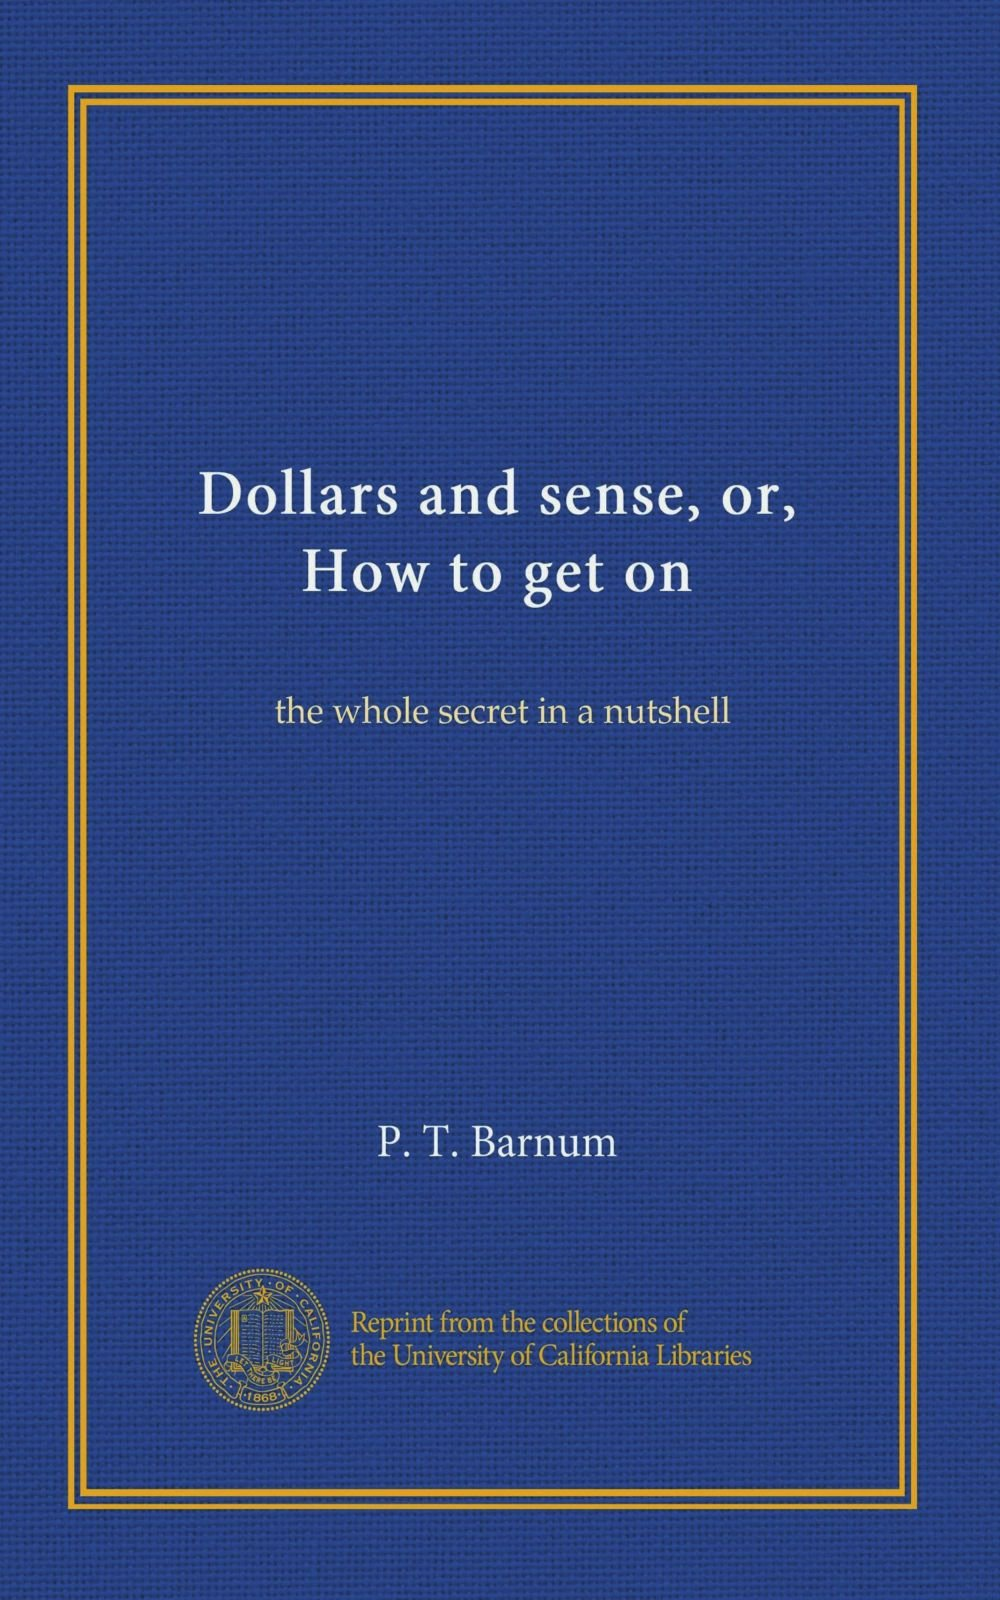 Dollars and sense, or, How to get on: the whole secret in a nutshell pdf